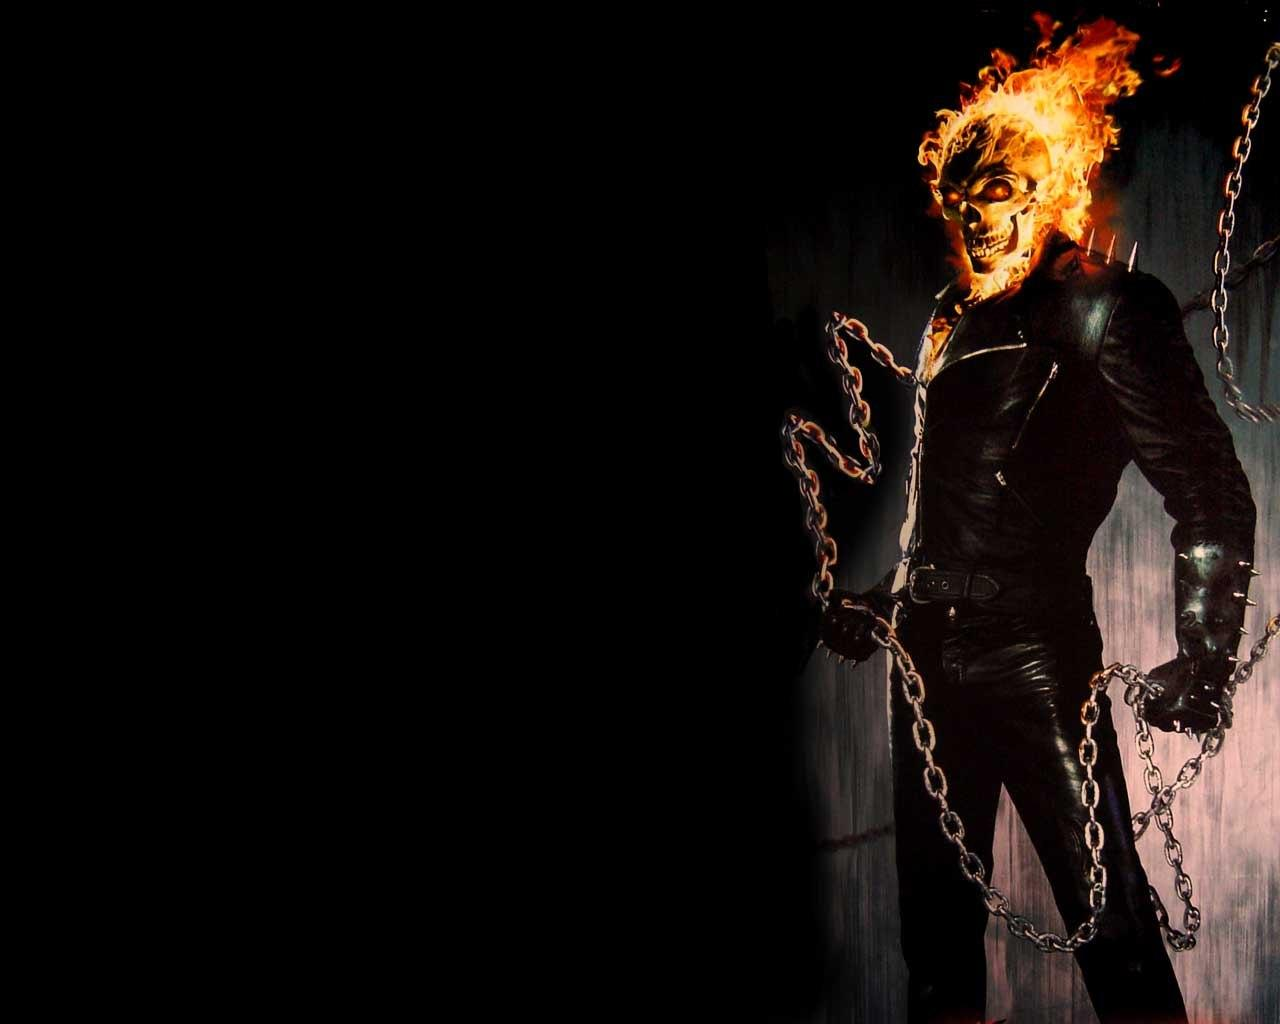 Ghost Rider Hd Wallpapers Page 1